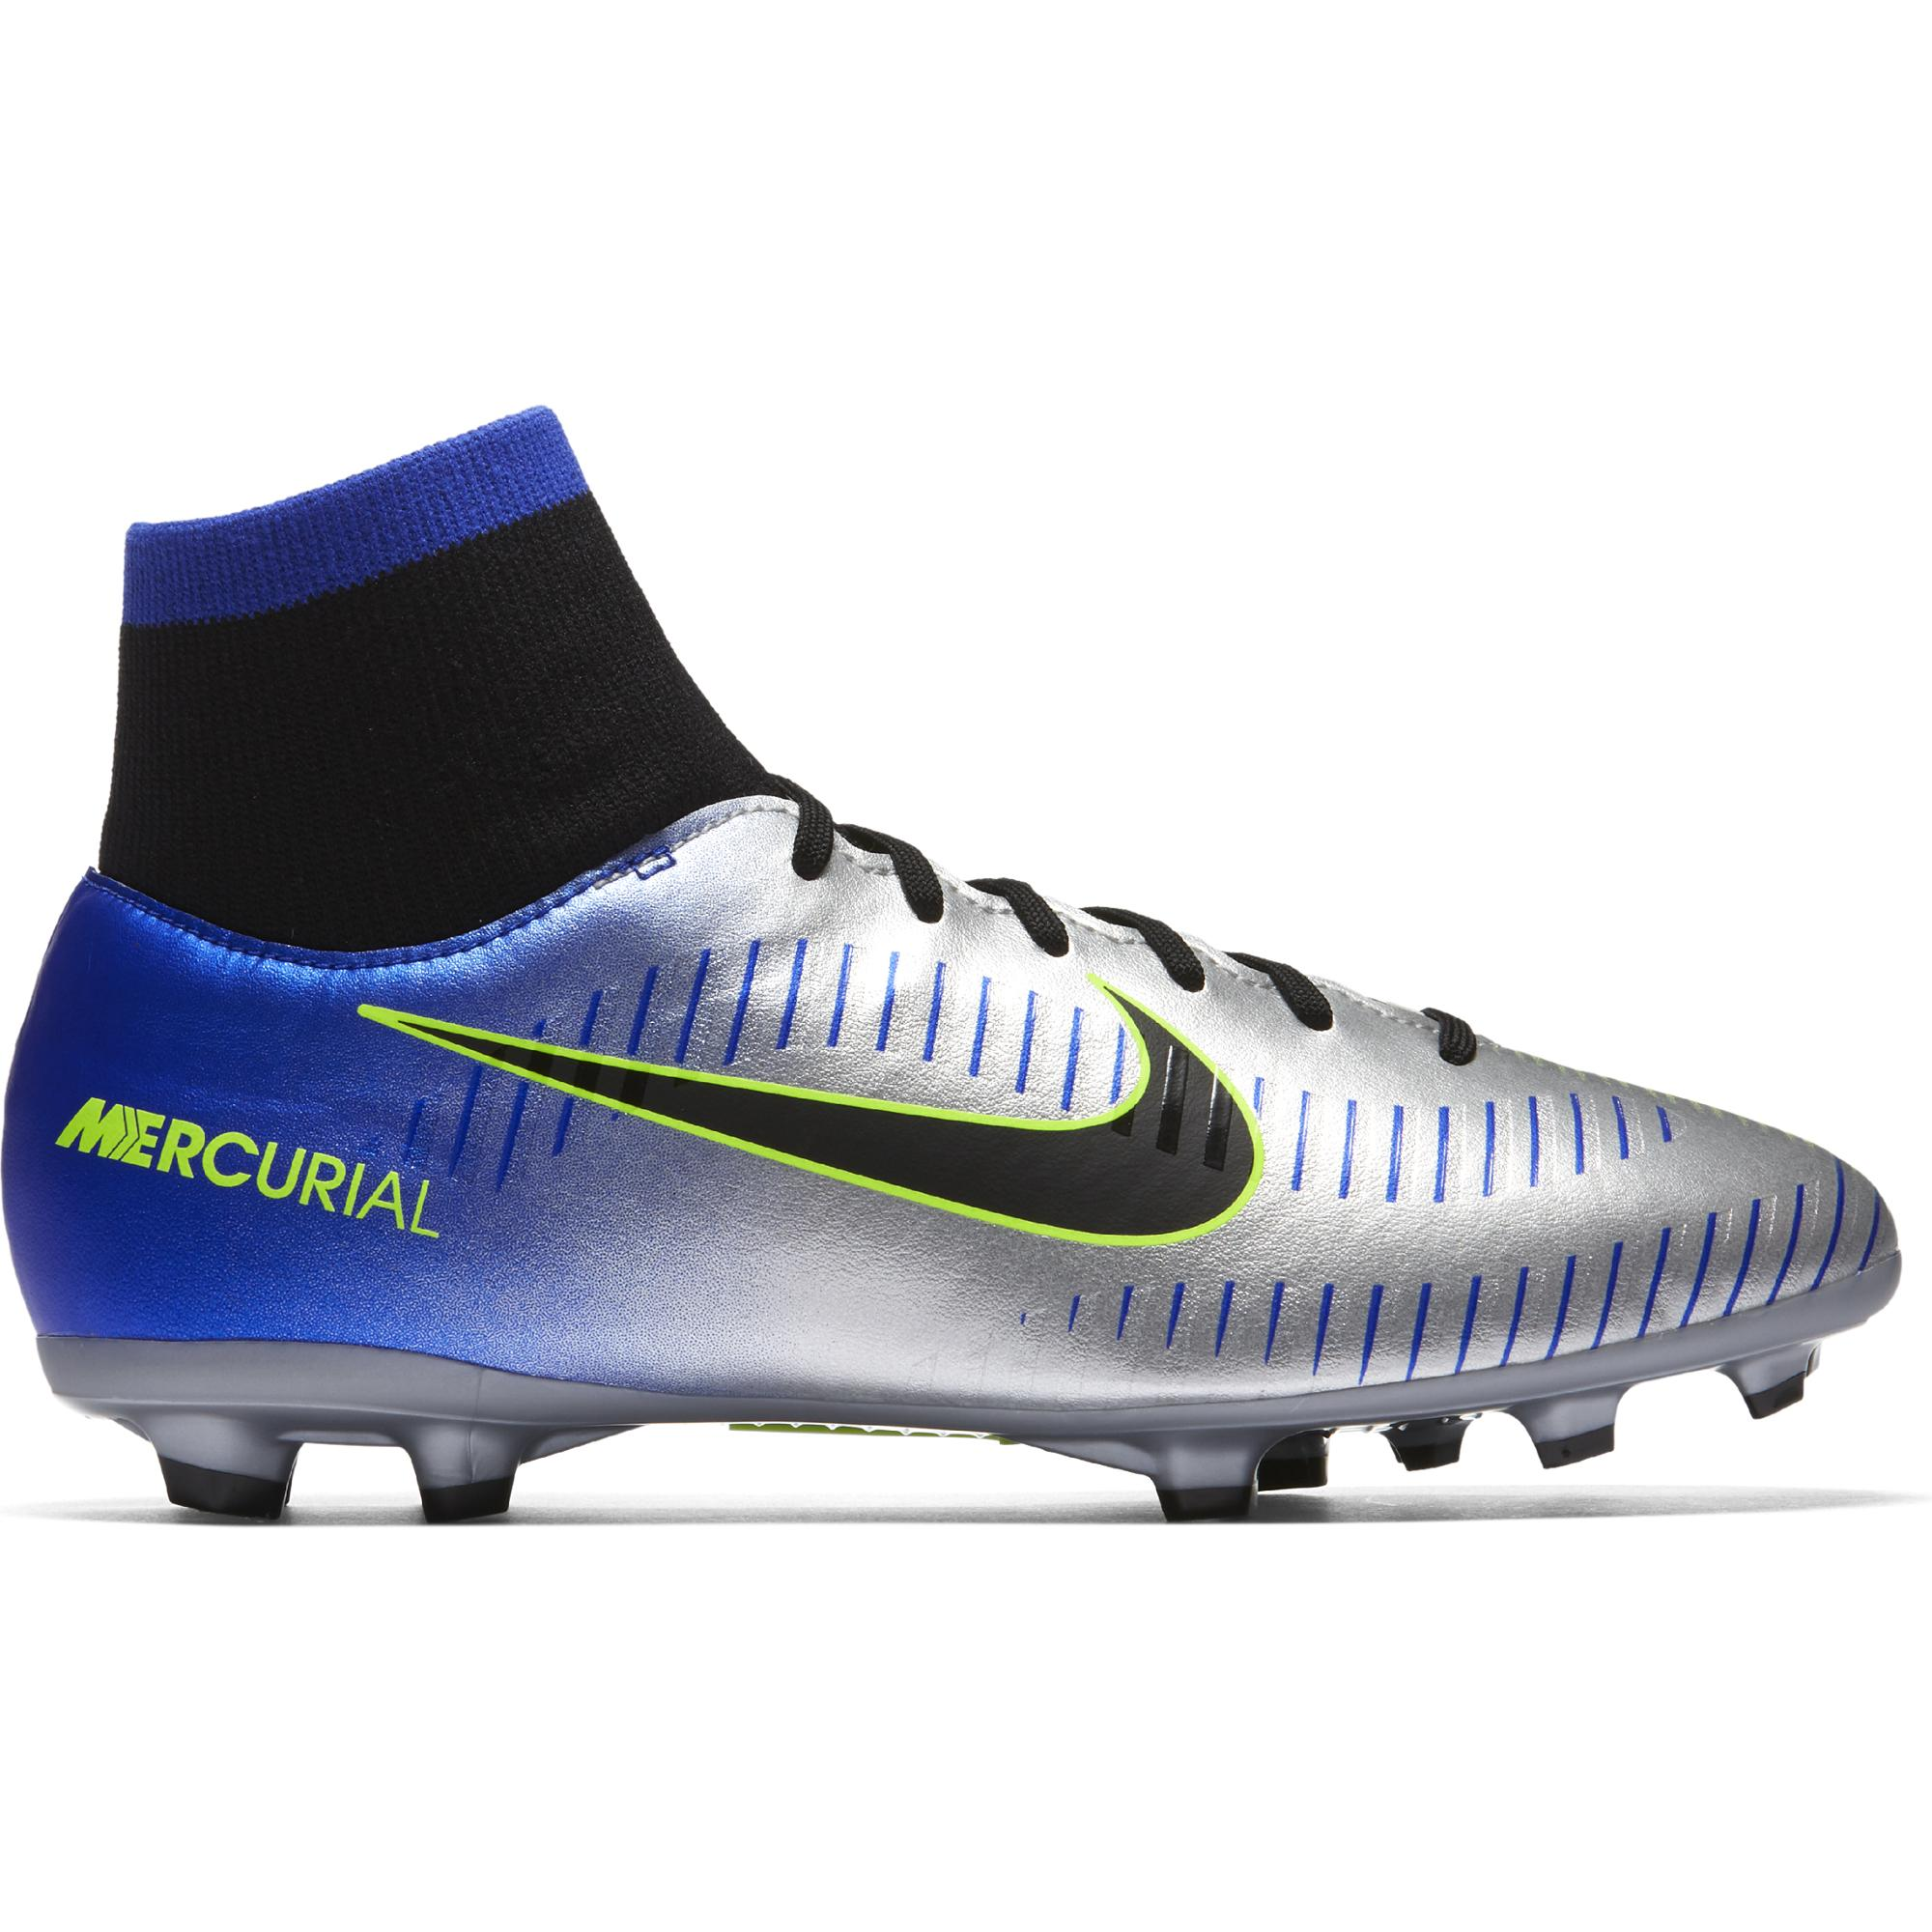 innovative design 27f28 49506 Nike Scarpe Calcio Mercurial Victory Vi Df Njr Fg Junior